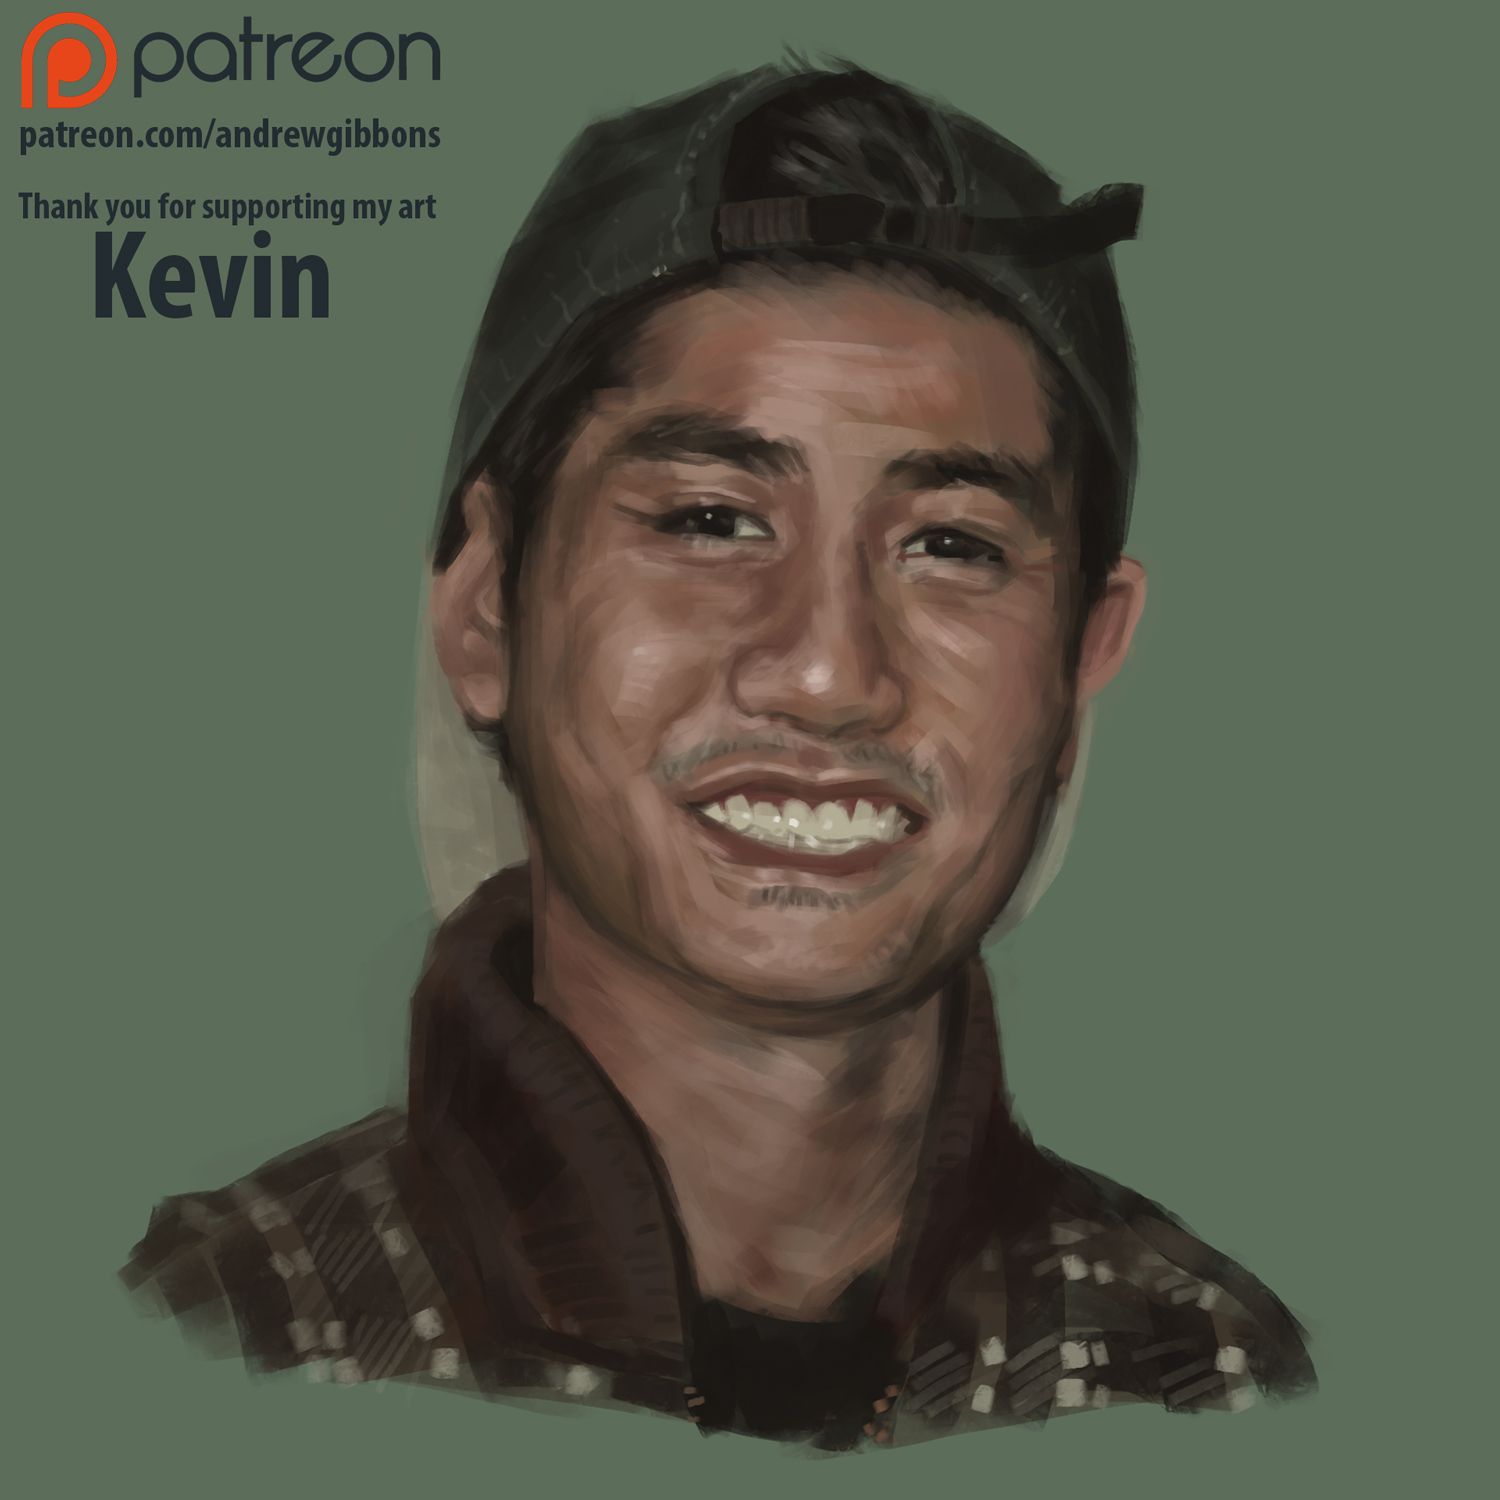 [Image: patron_portrait___kevin_by_andrew_gibbons-dbhvhrp.jpg]